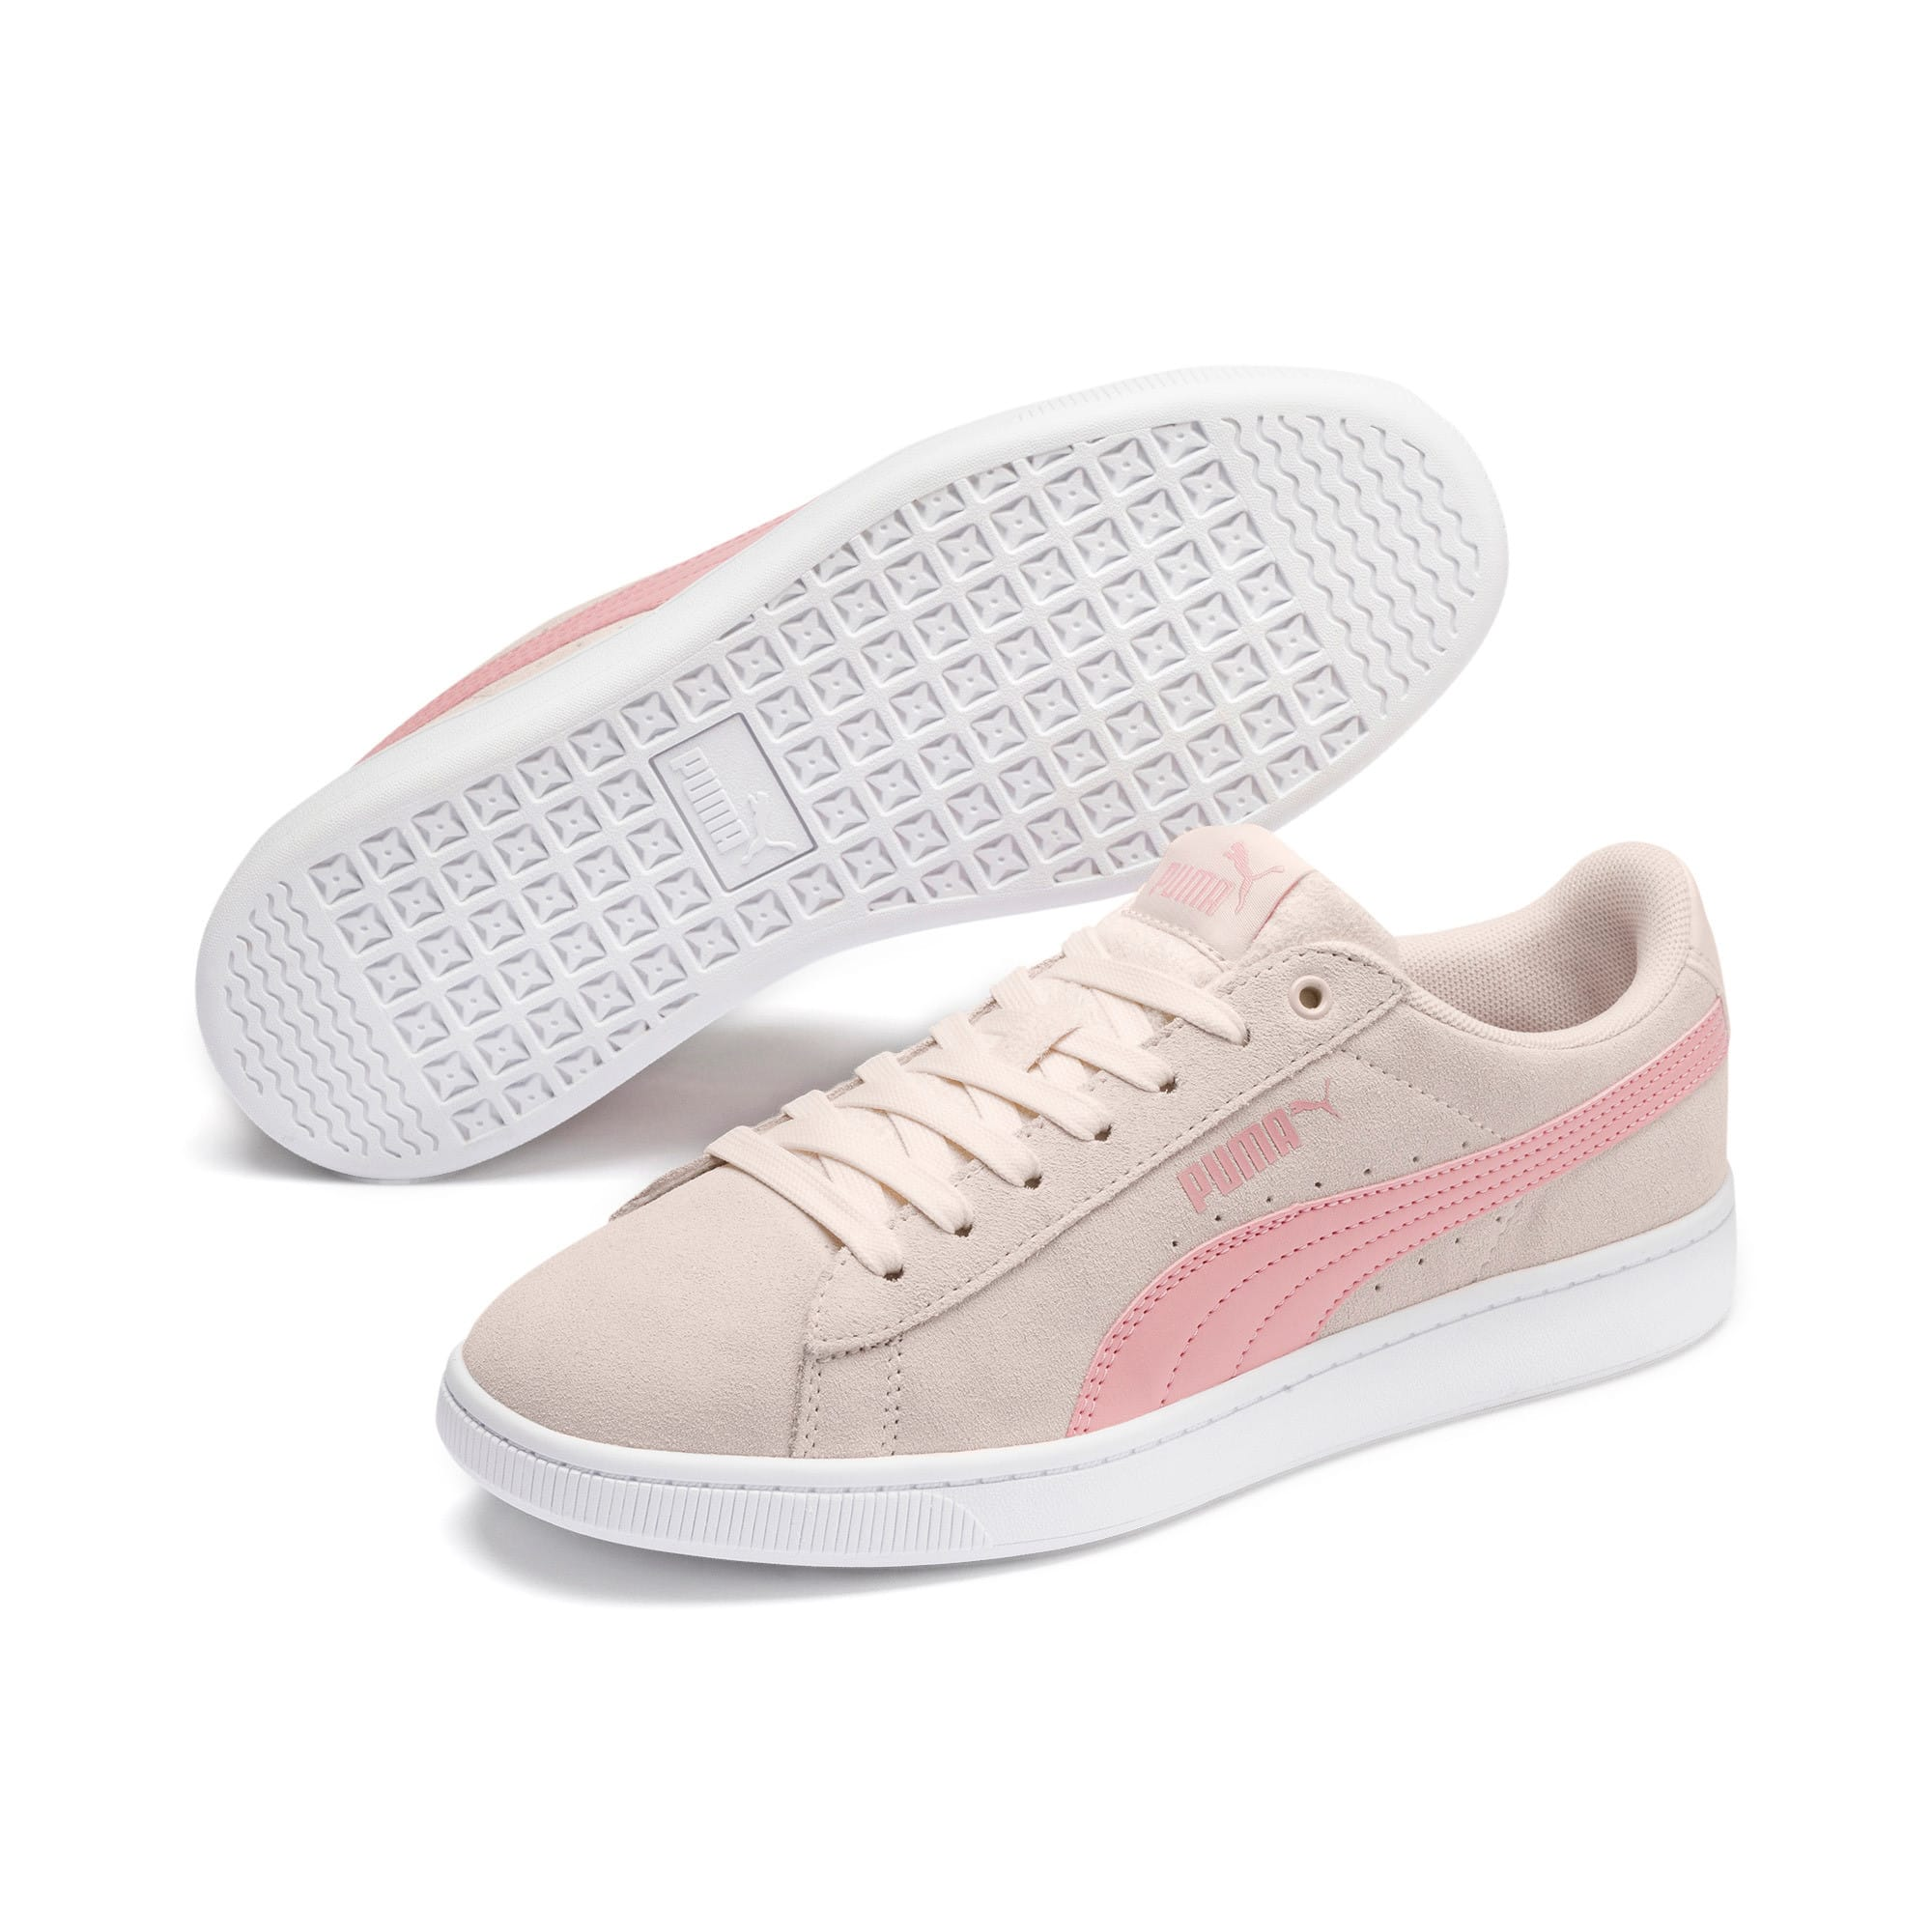 Thumbnail 2 of PUMA Vikky v2 Women's Sneakers, P Parchment-B Rose-White, medium